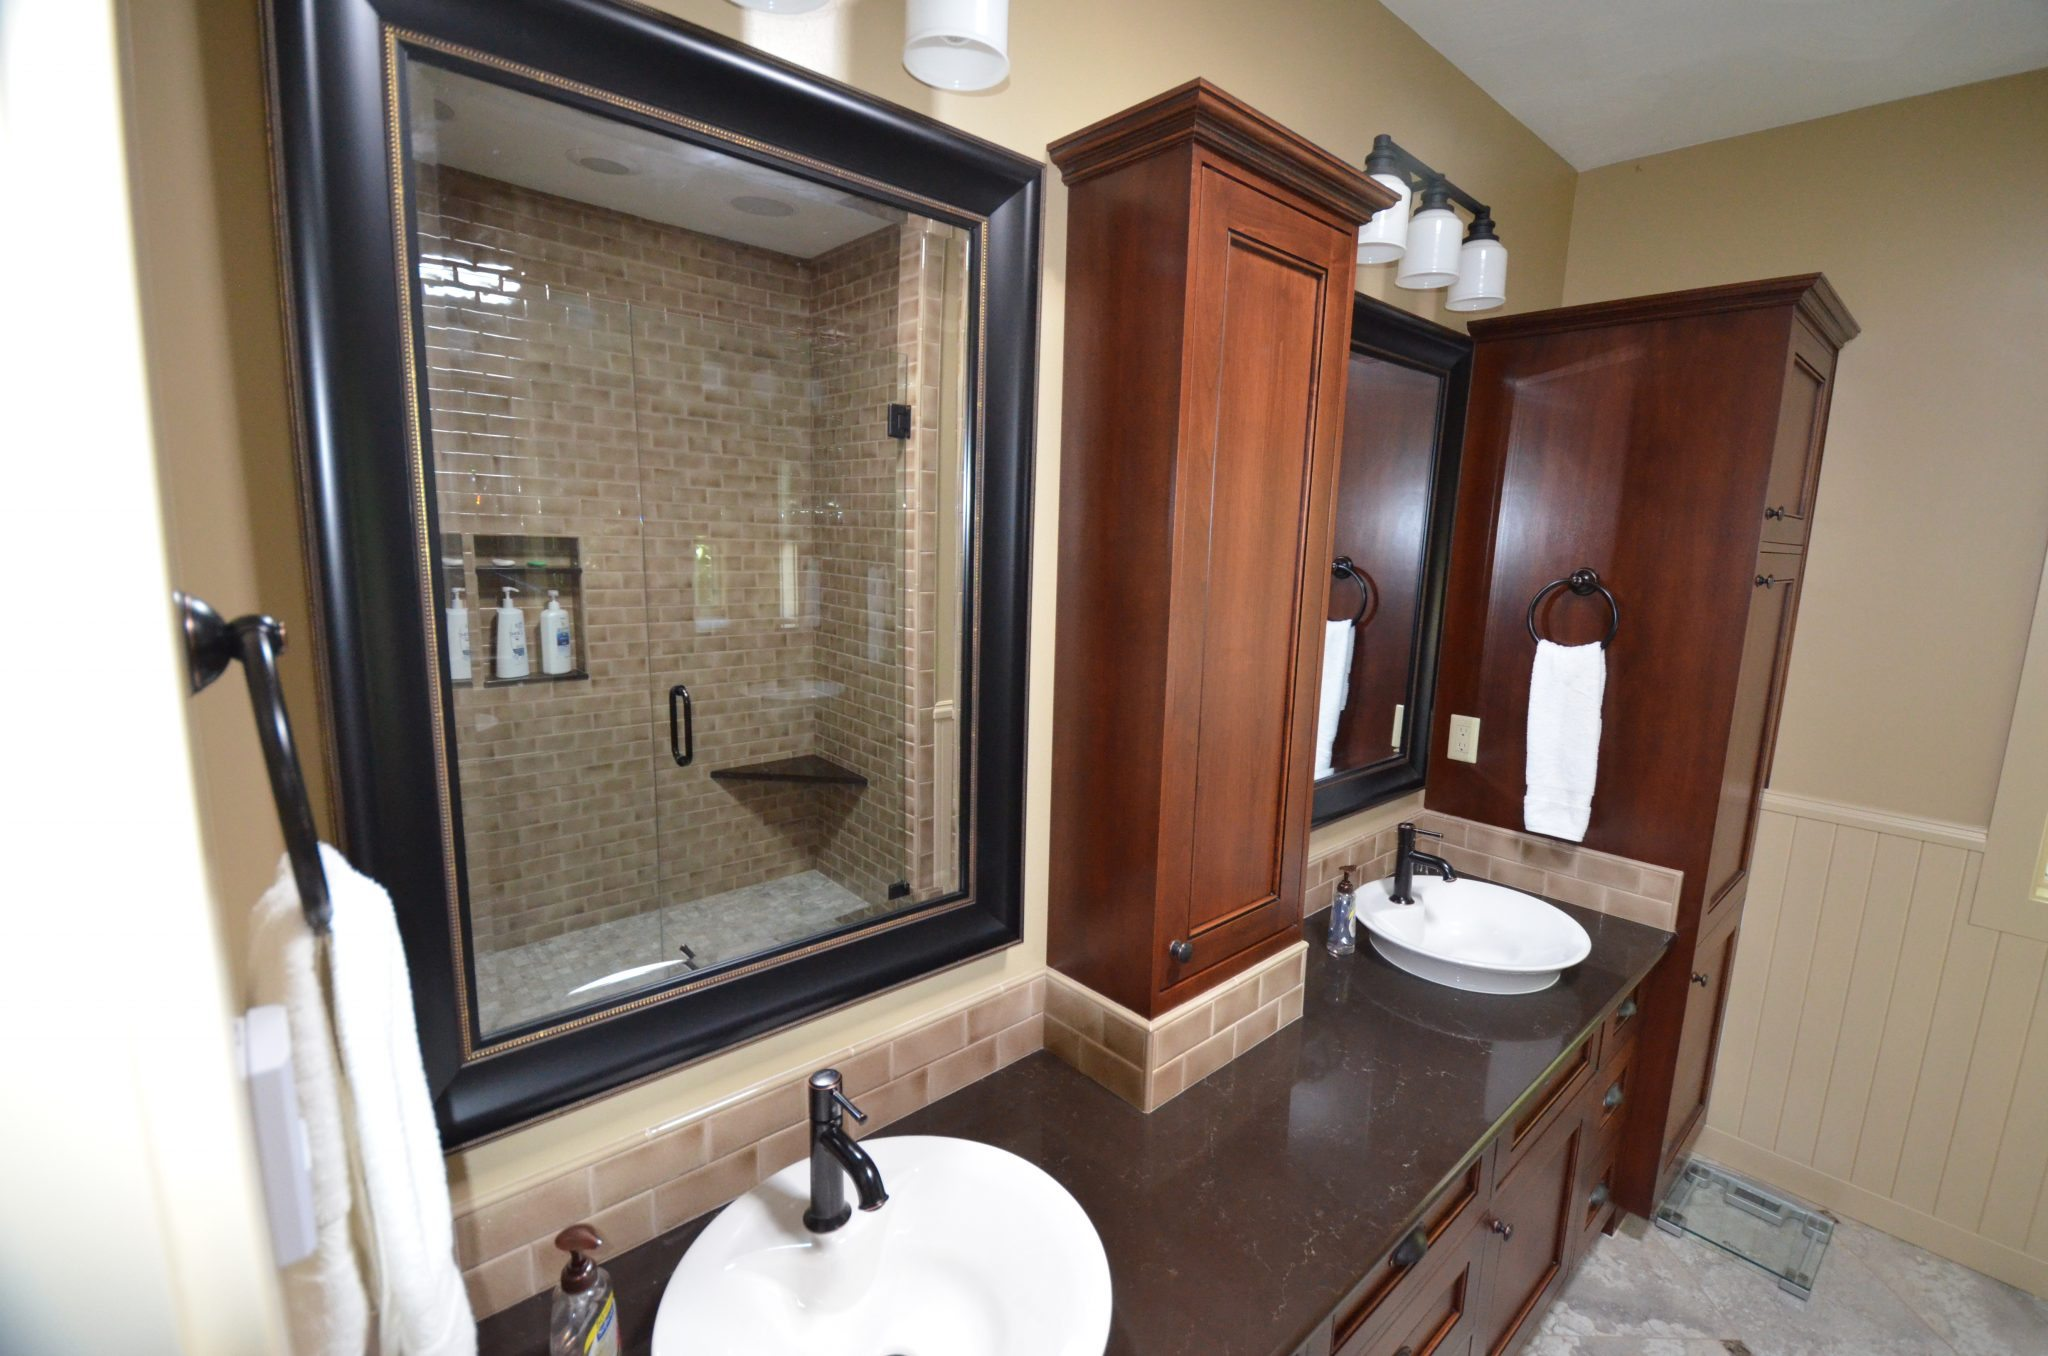 Bathroom Vanity Vendors three simple steps to a beautiful bathroom vanity | dale's